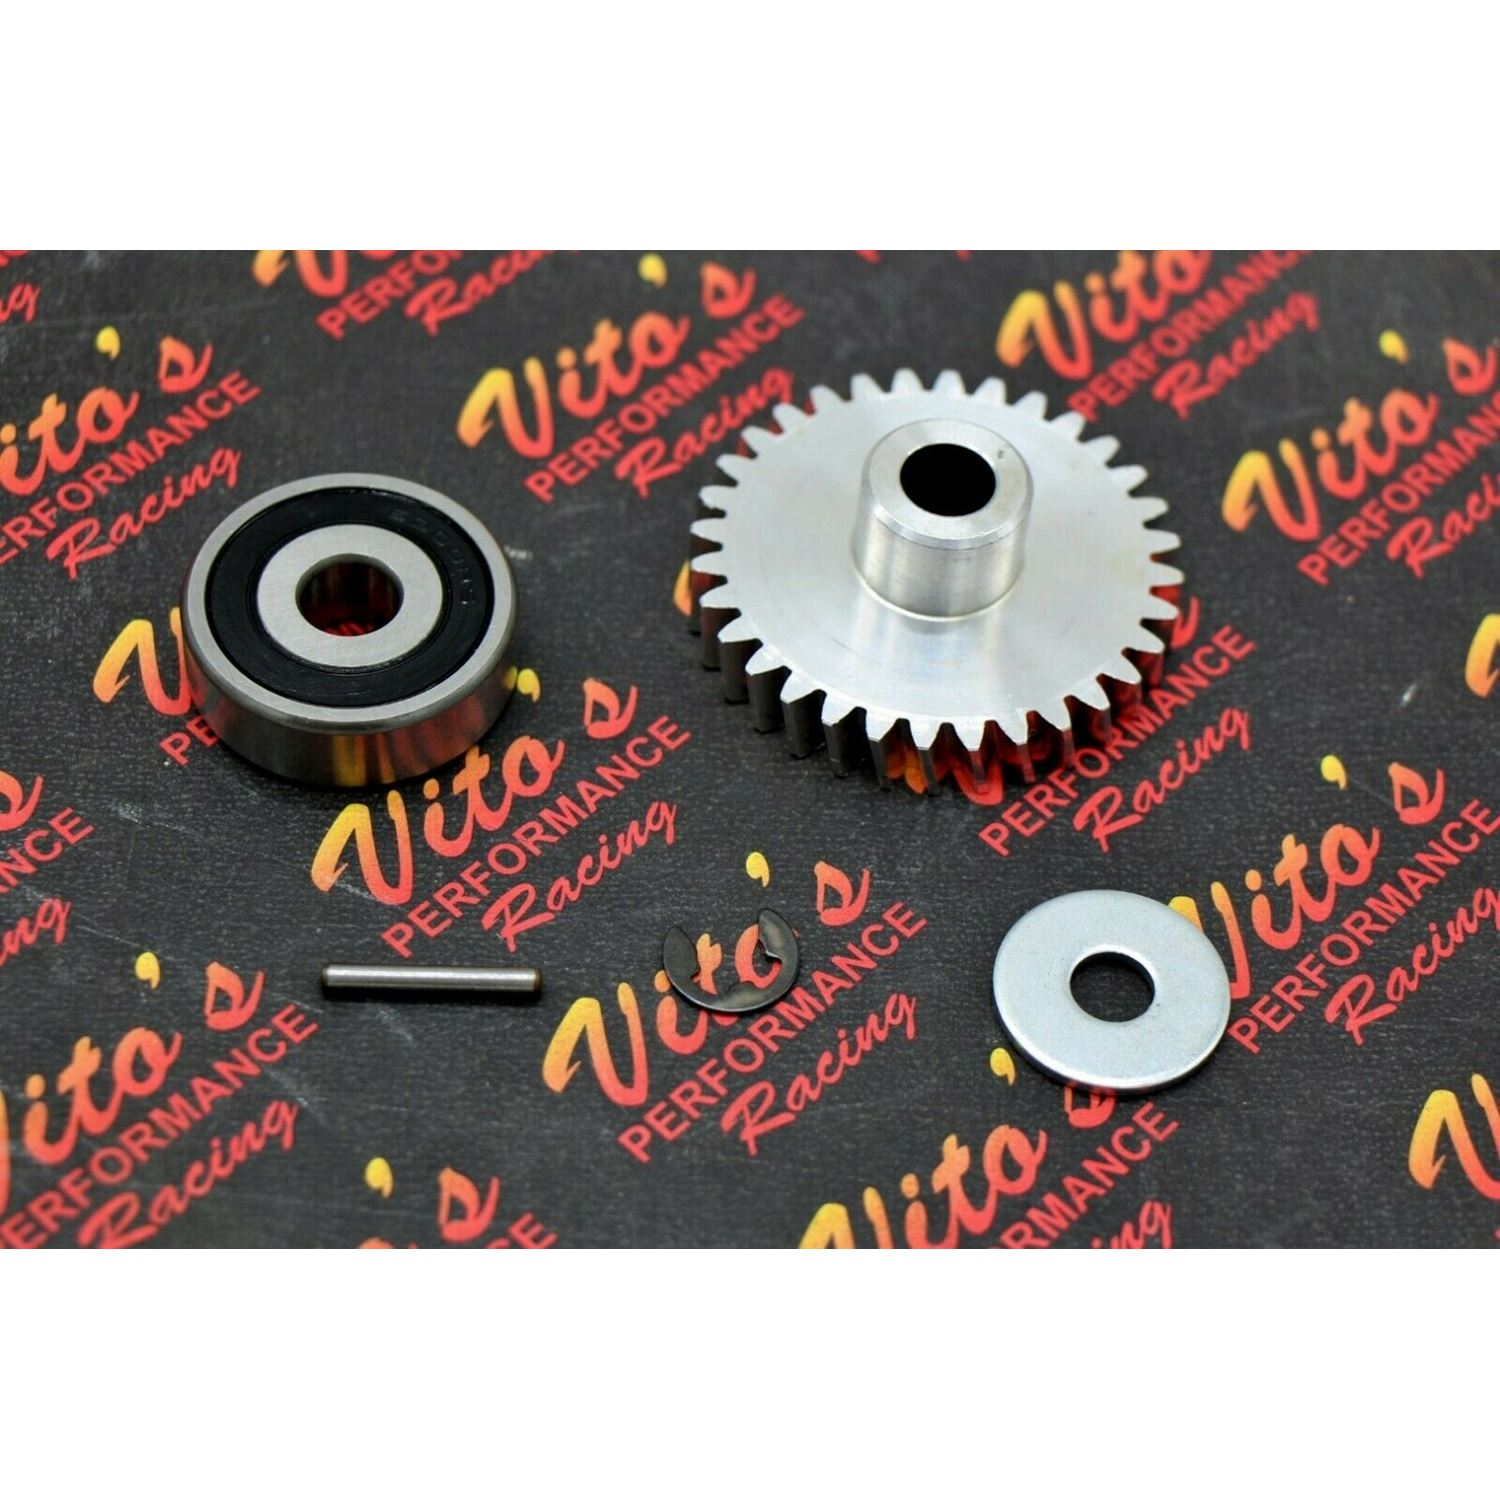 Vito's Banshee BILLET GEAR aluminum water pump